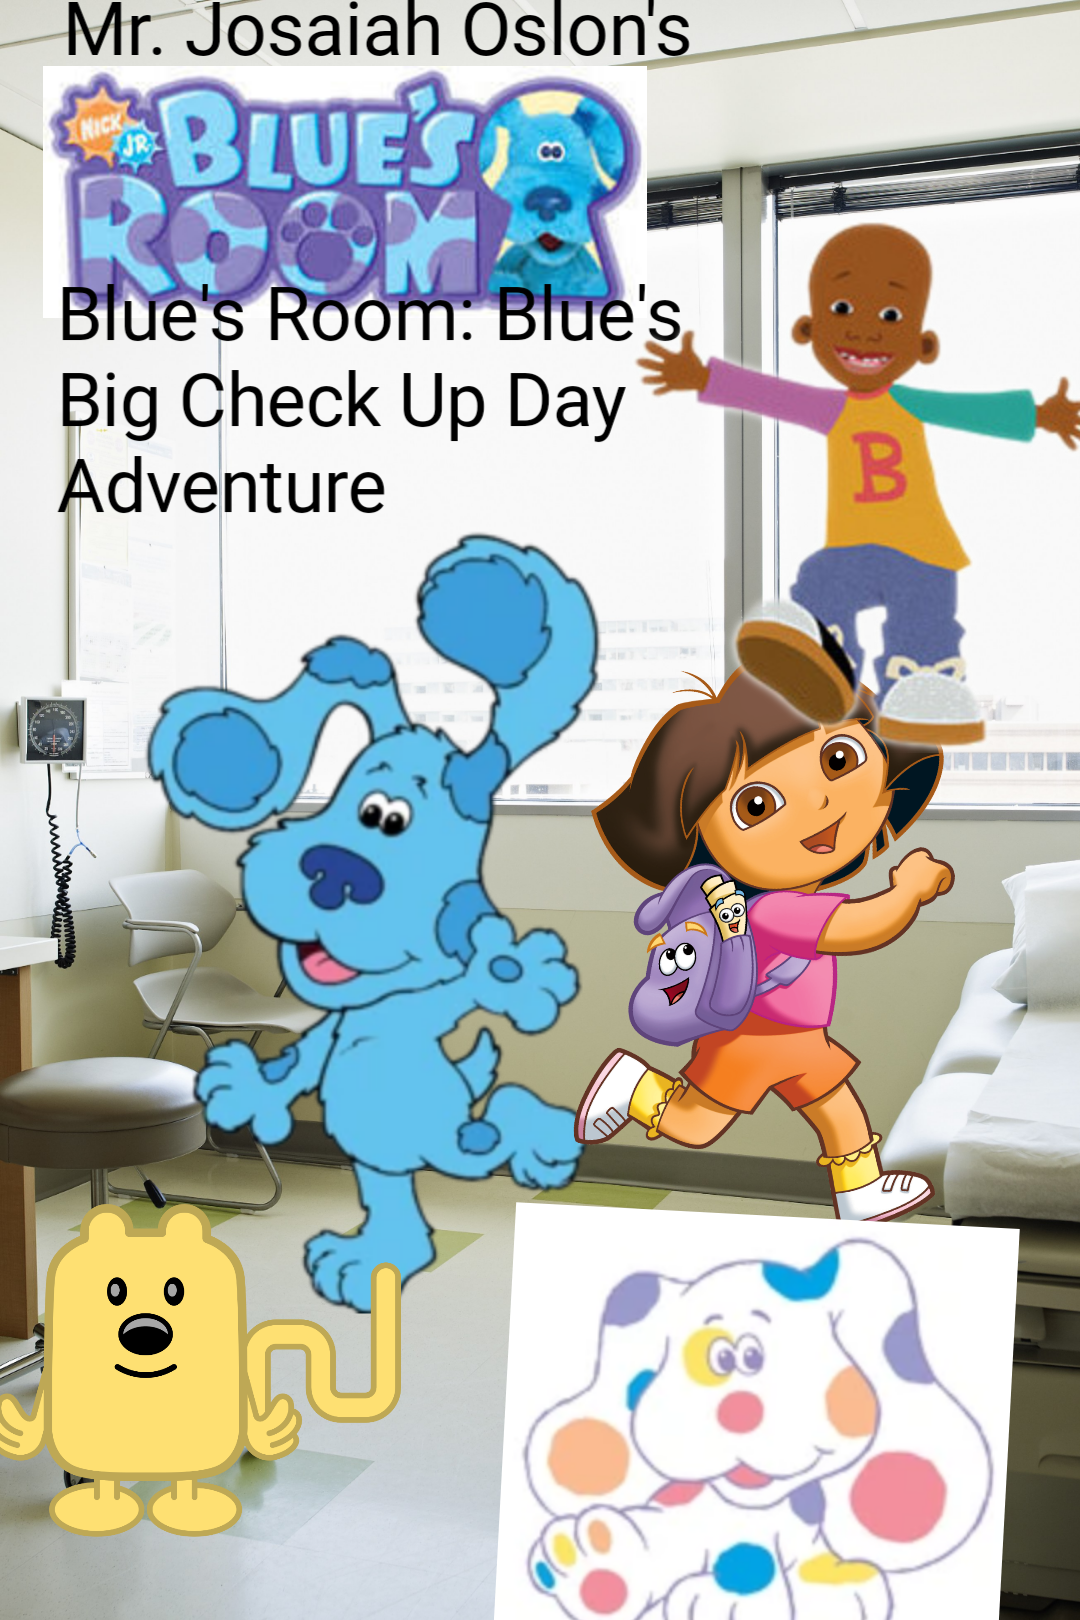 Blue's Room: Blue's Big Check Up Day Adventure